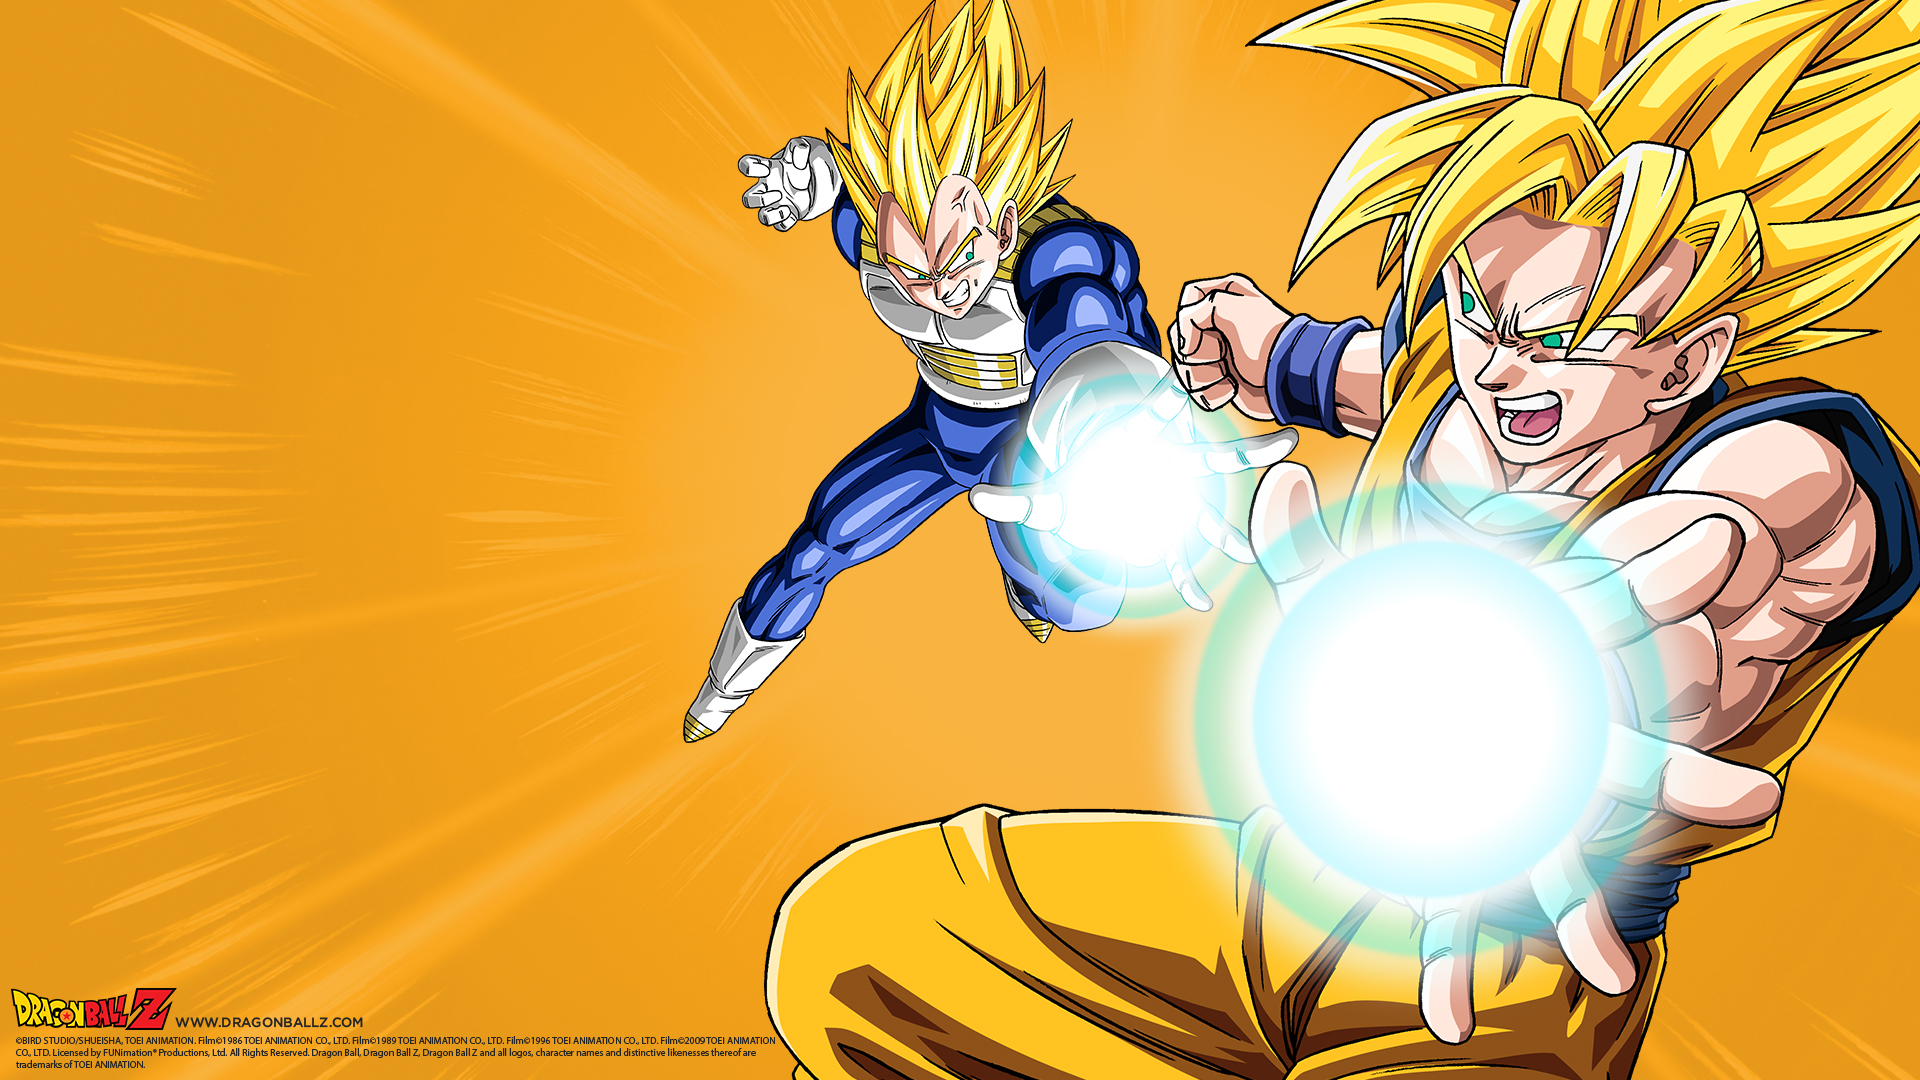 Moving Wallpapers Dragon Ball Z 1395600 Hd Wallpaper Backgrounds Download